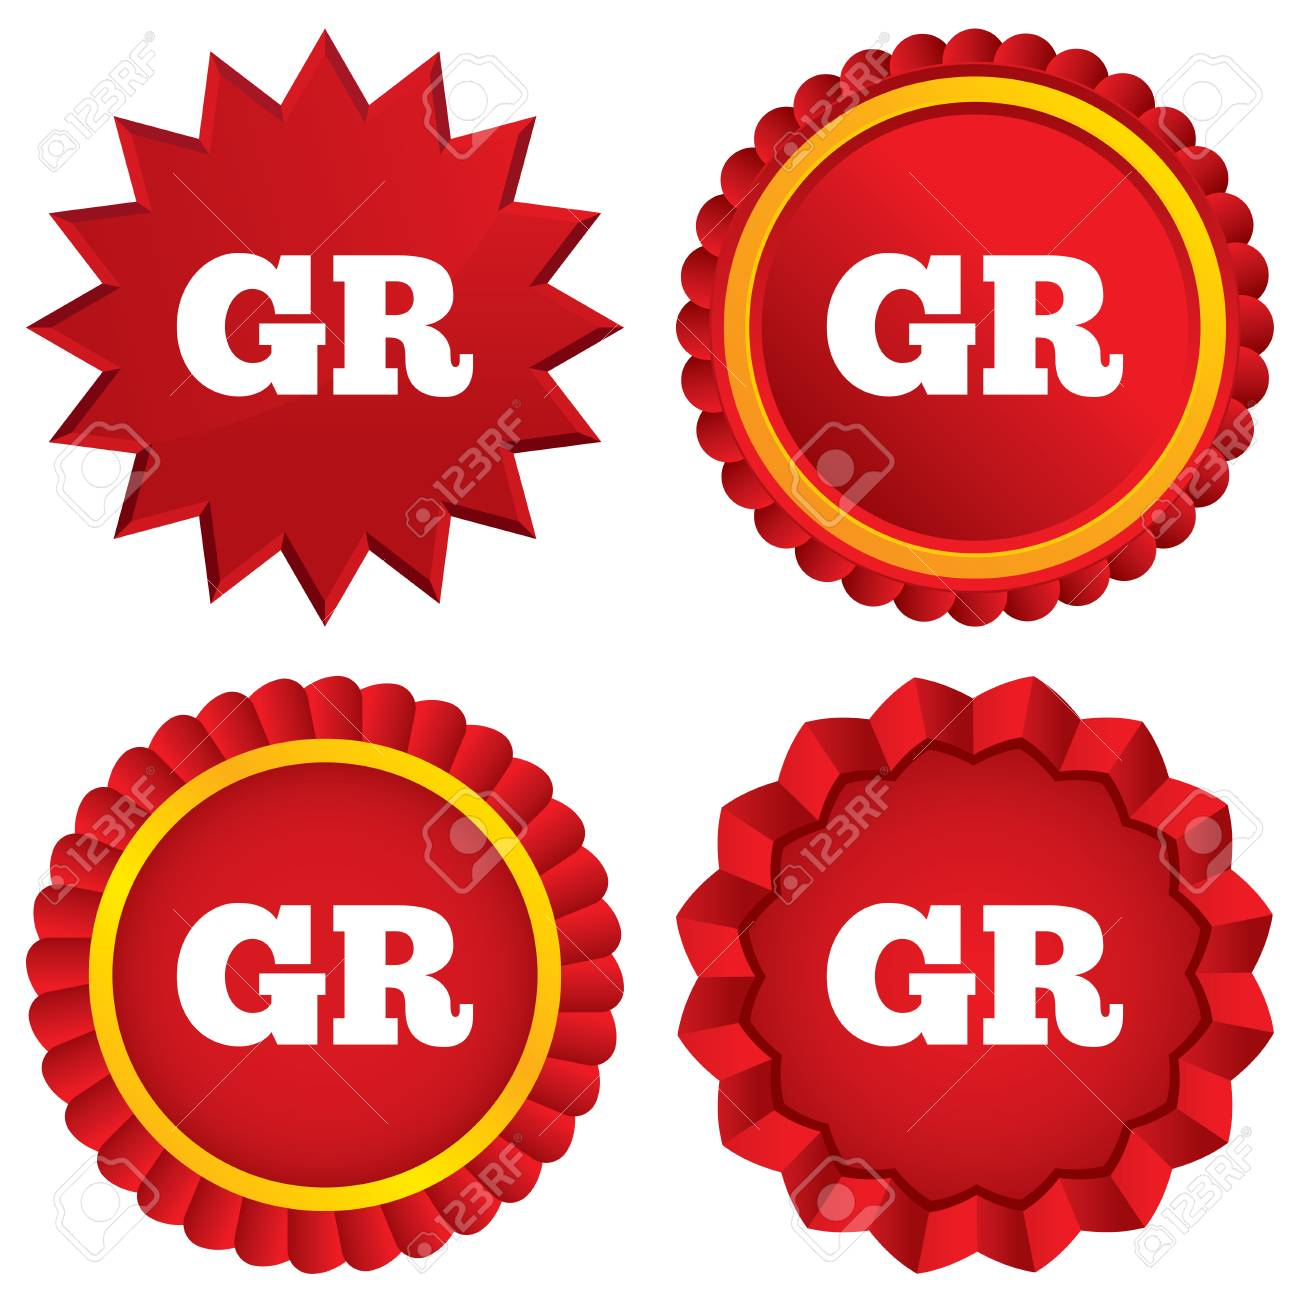 GR Greece translation symbol. Red stars stickers. Certificate emblem